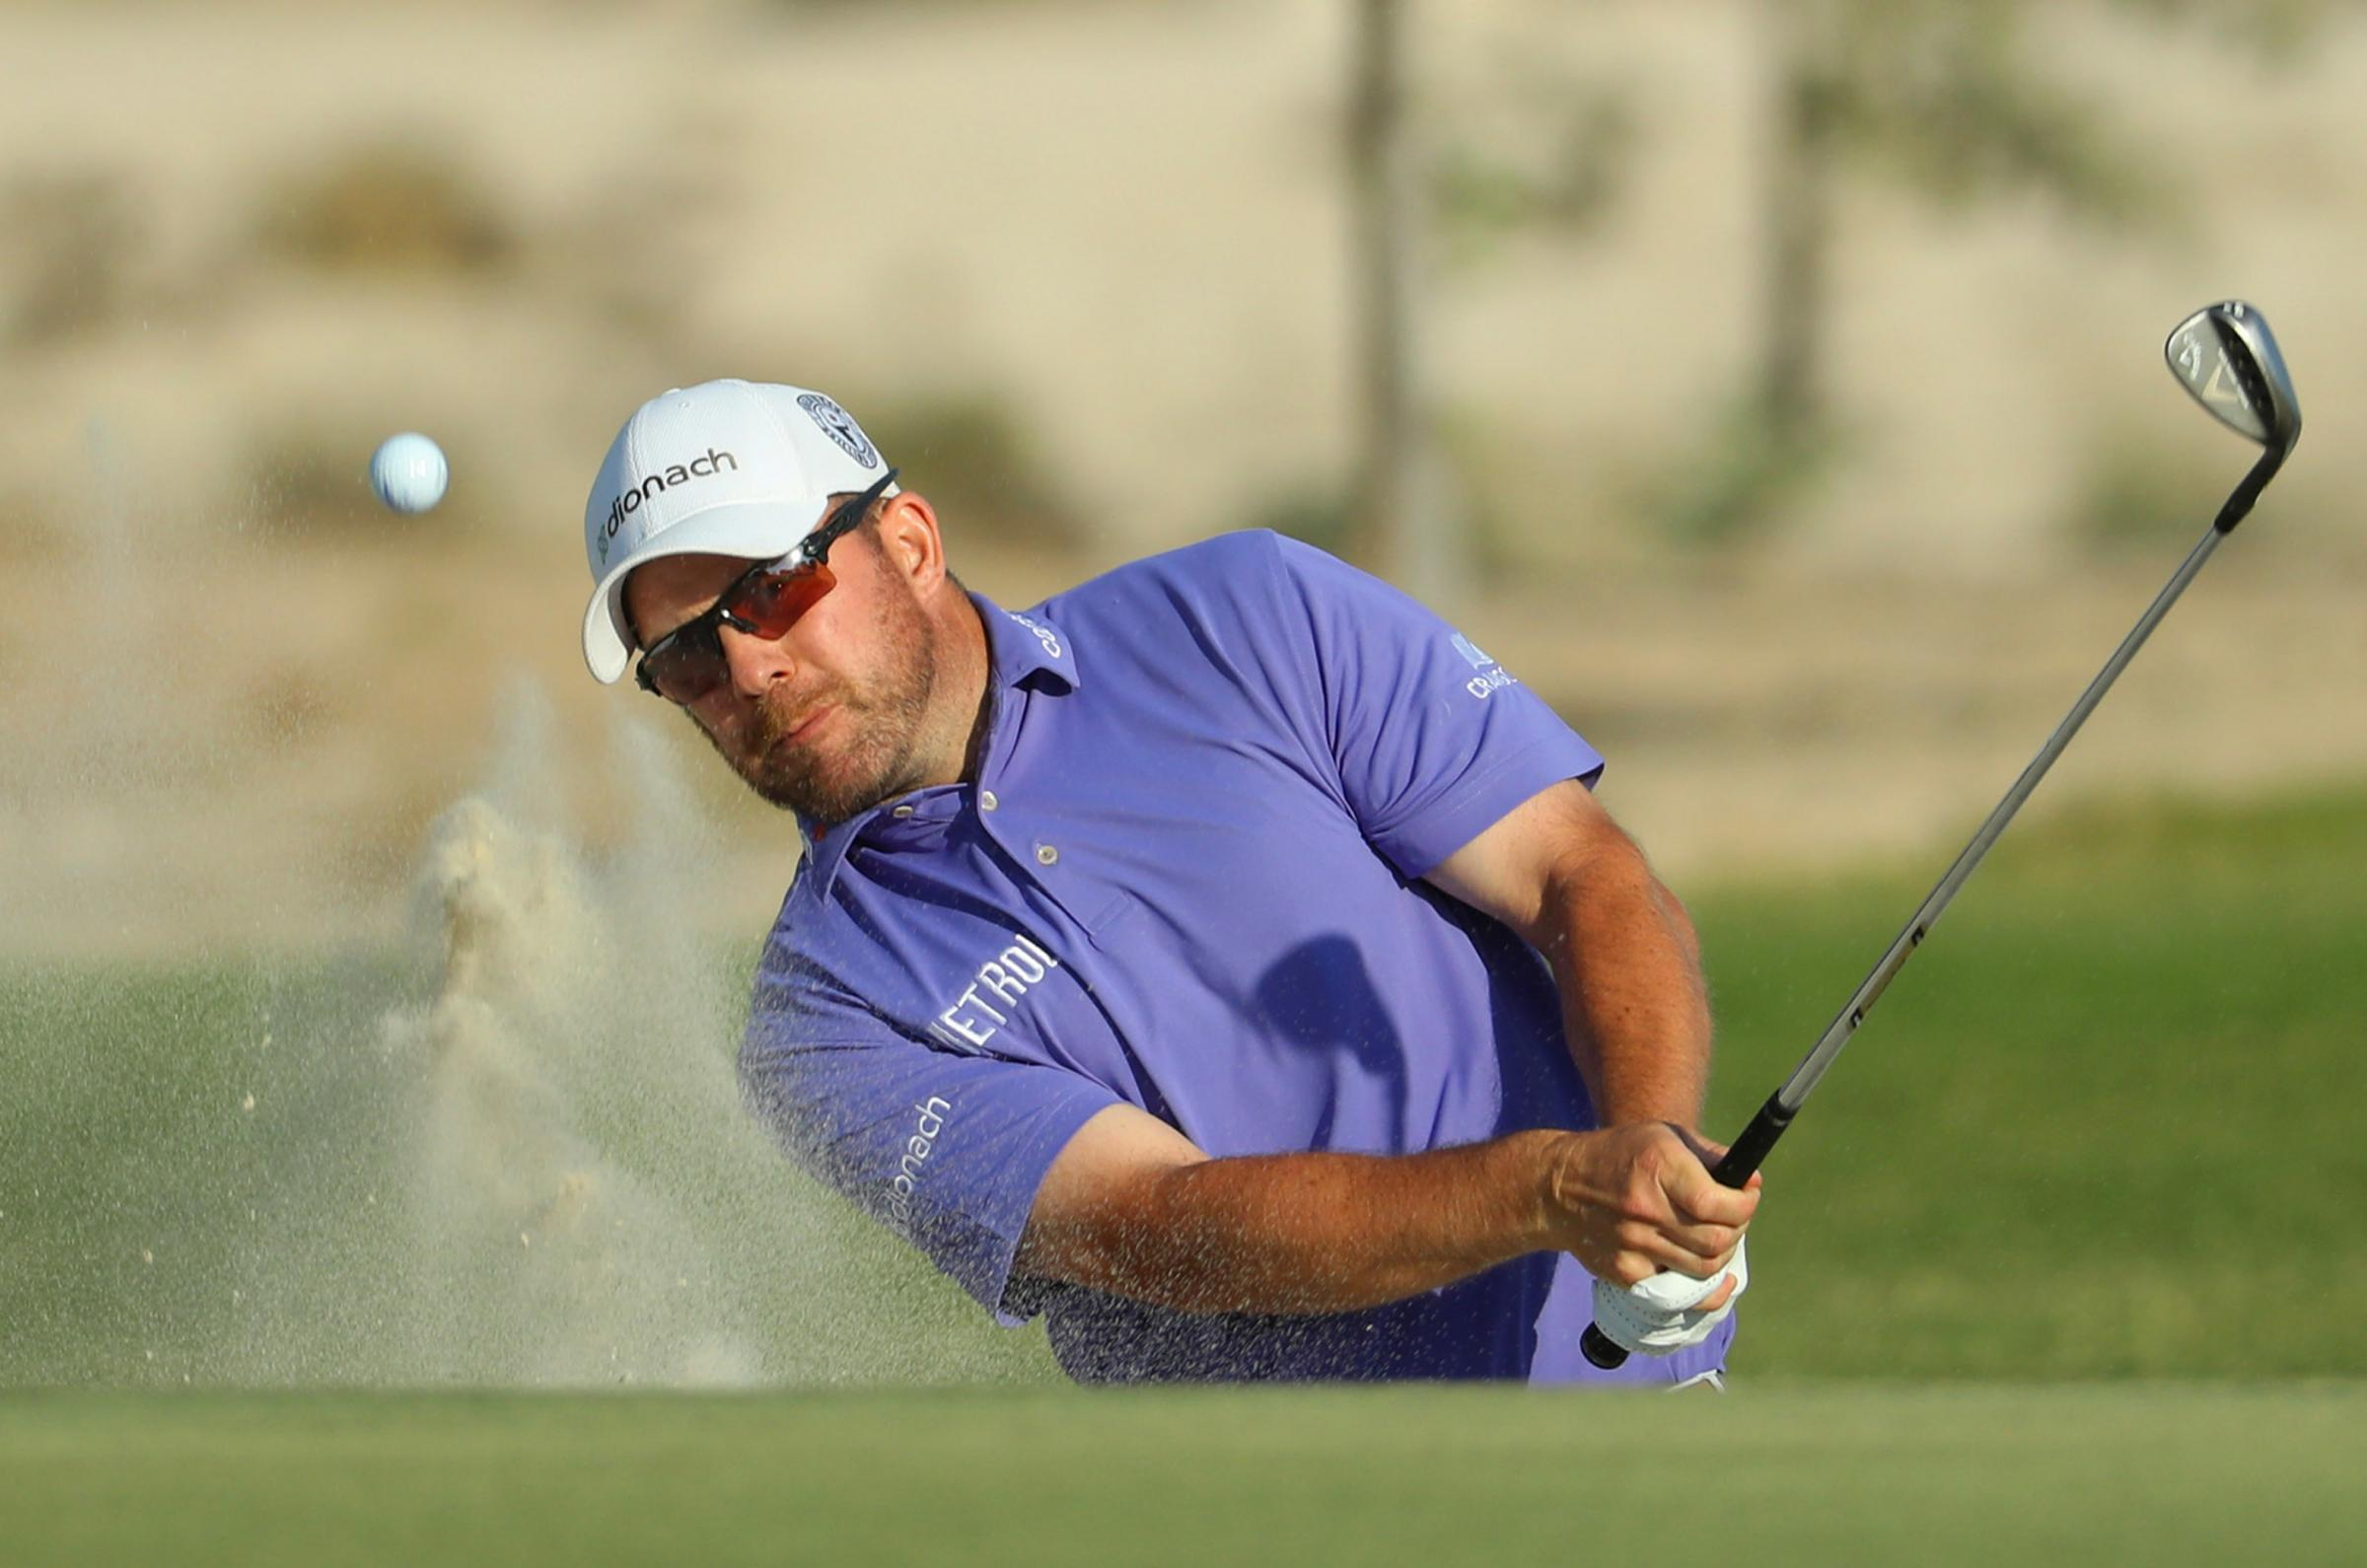 Richie Ramsay plays from a bunker on the fourth hole during day one of the Commercial Bank Qatar Masters at Doha Golf Club